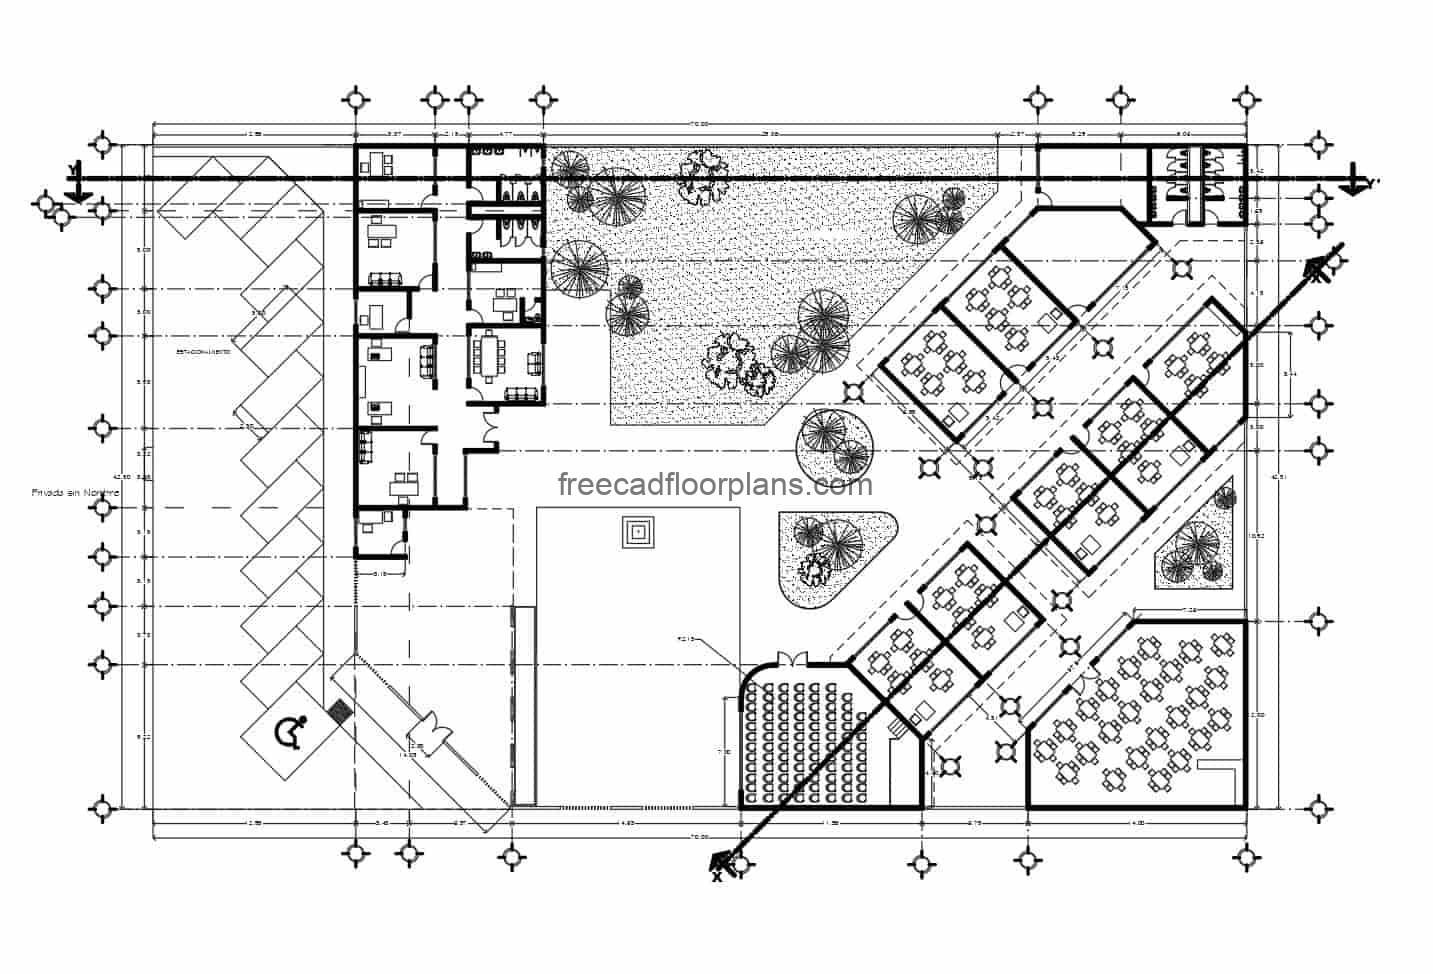 Complete preliminary project plans in DWG format for a single-level school, classrooms, green areas, offices and multipurpose rooms. The plans include an architectural plan, an overall plan, a dimensioned plan, elevations and technical construction detail plans.